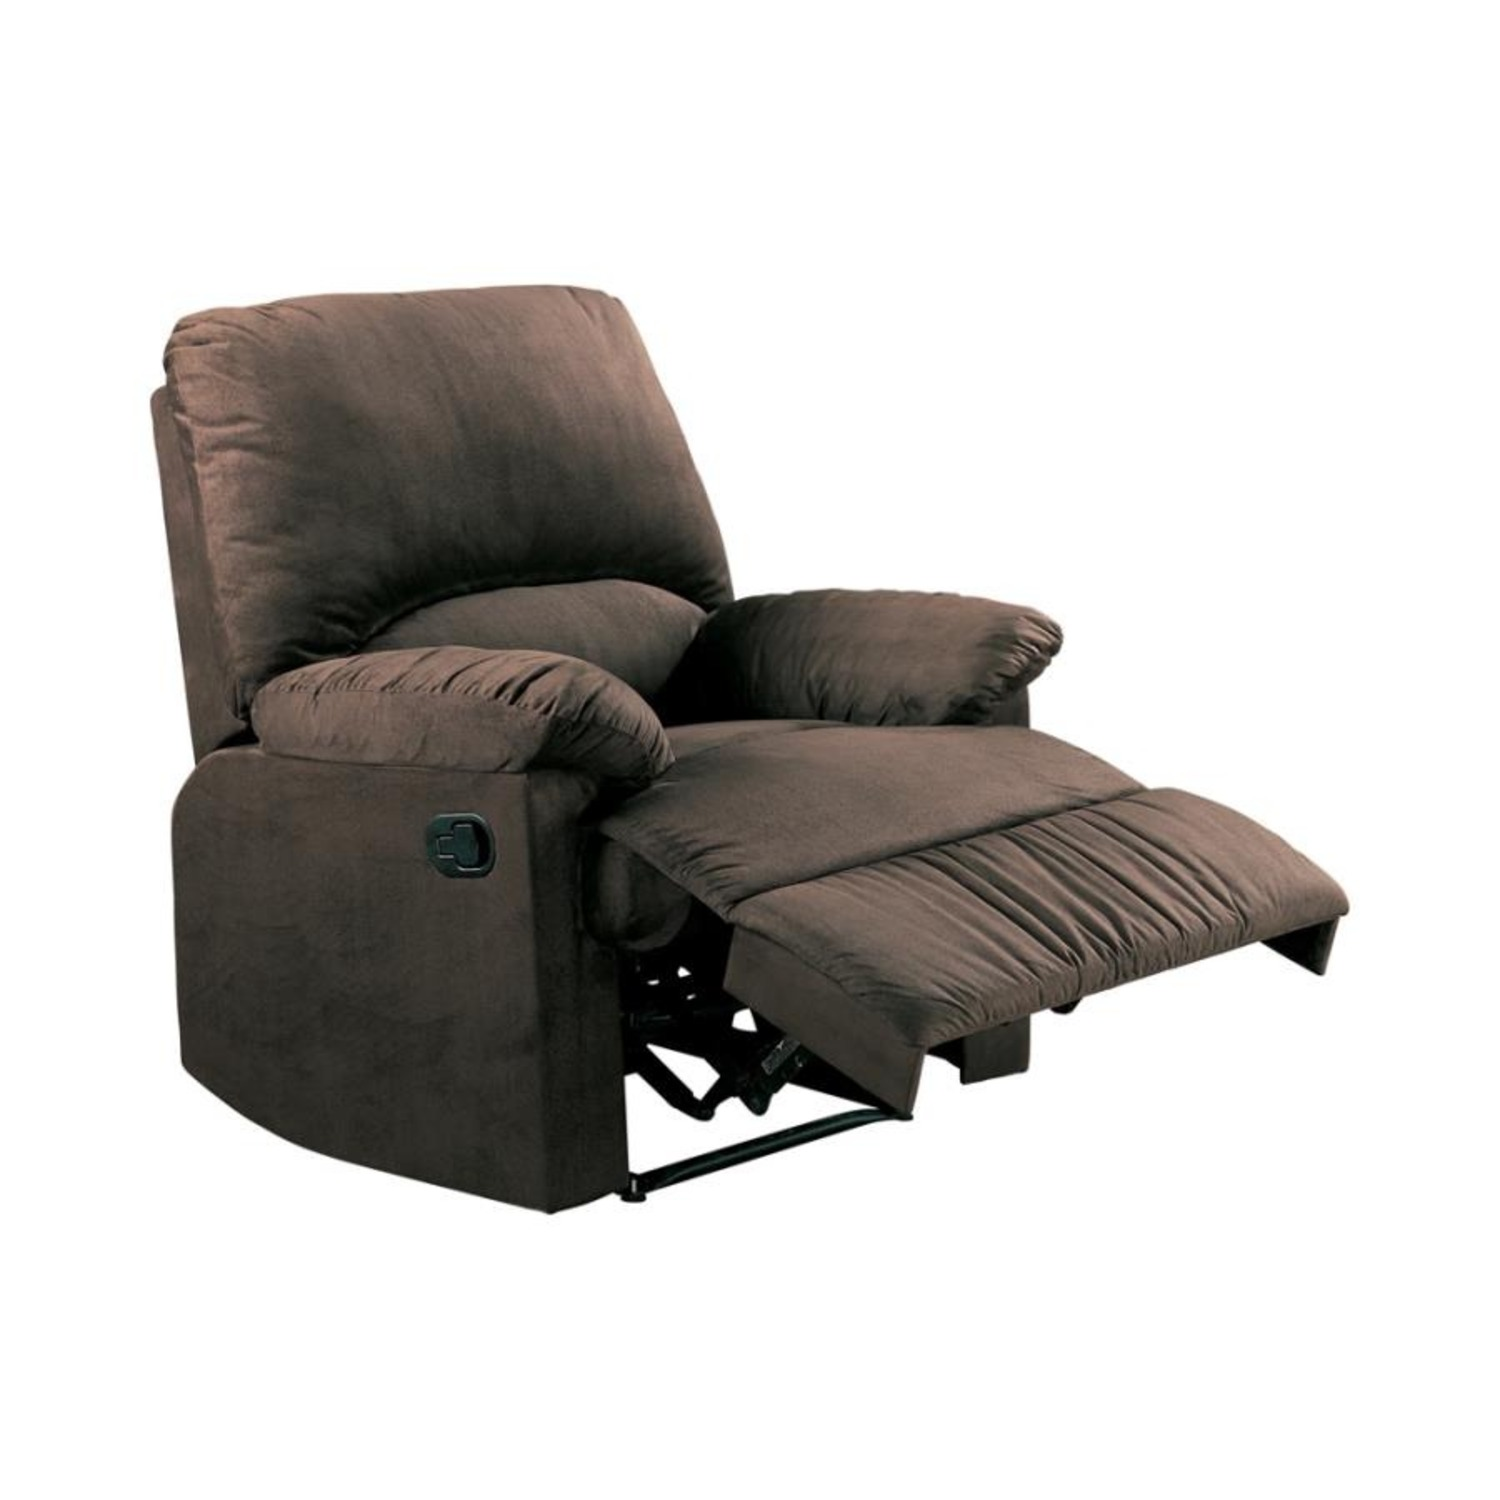 Casual Recliner In Chocolate Microfiber Upholstery - image-0